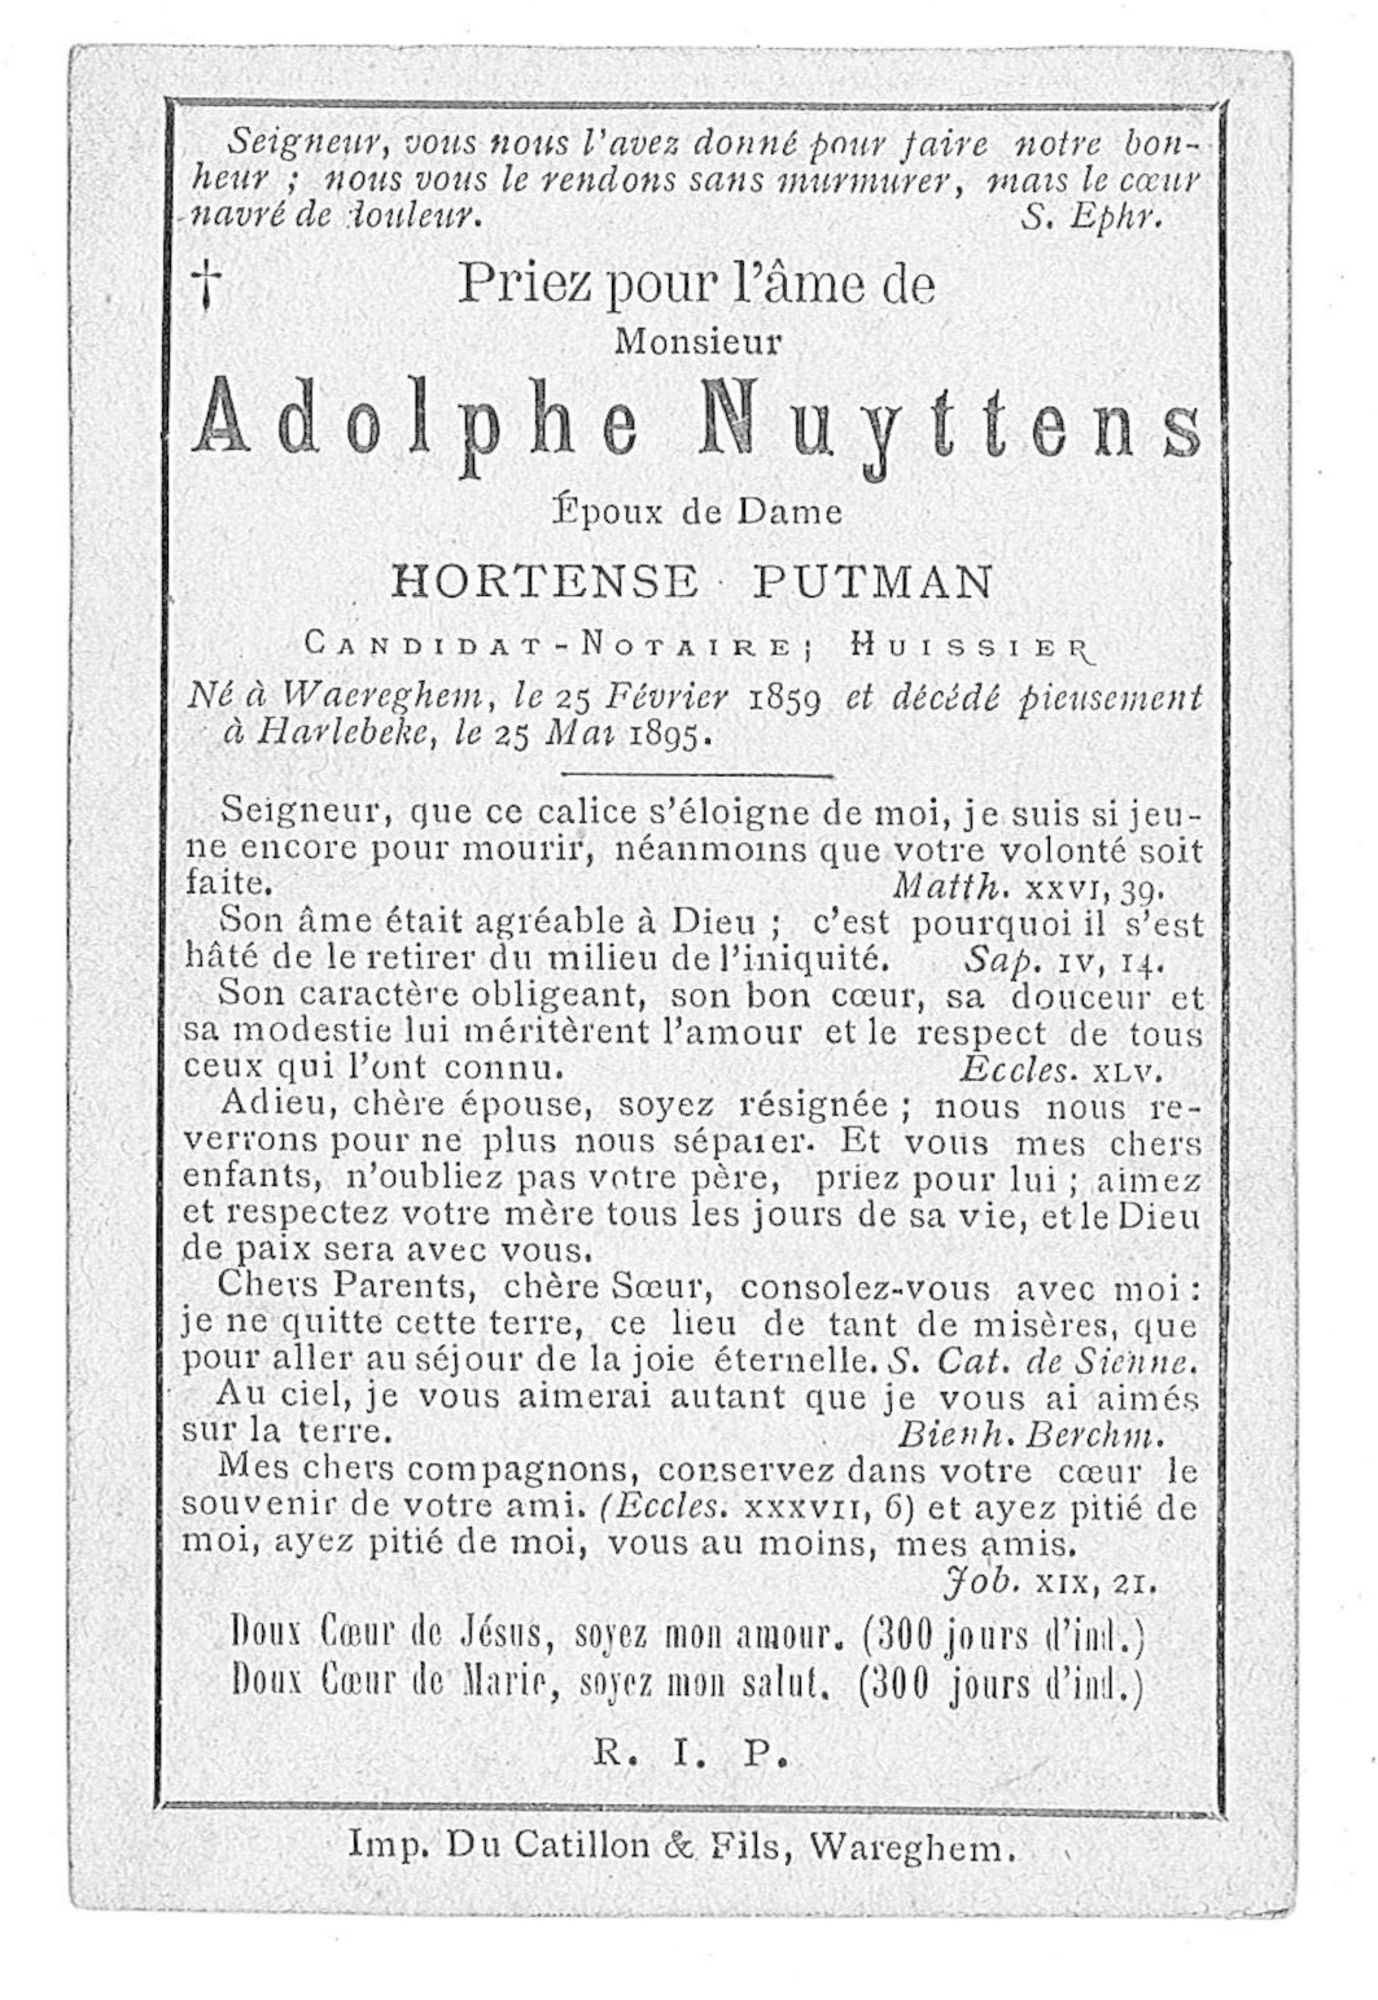 Adolphe Nuyttens